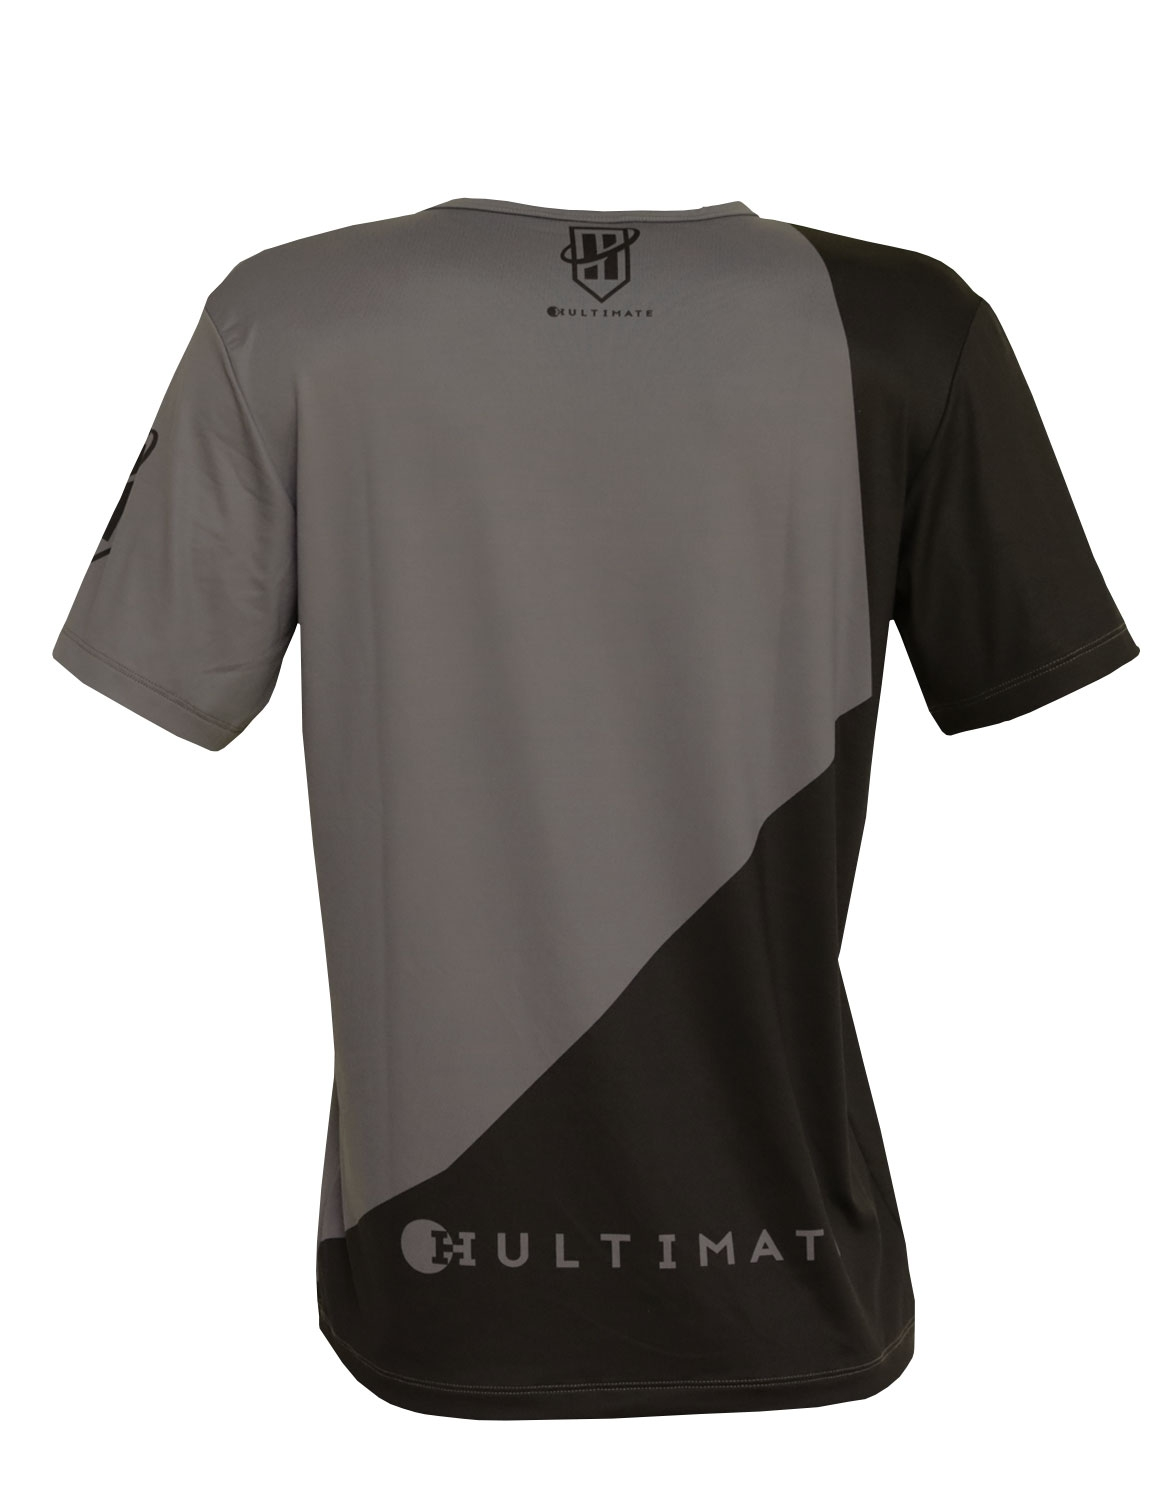 COLLECTION | T-shirts | B-GREY | Hultimate Abbigliamento Sportivo